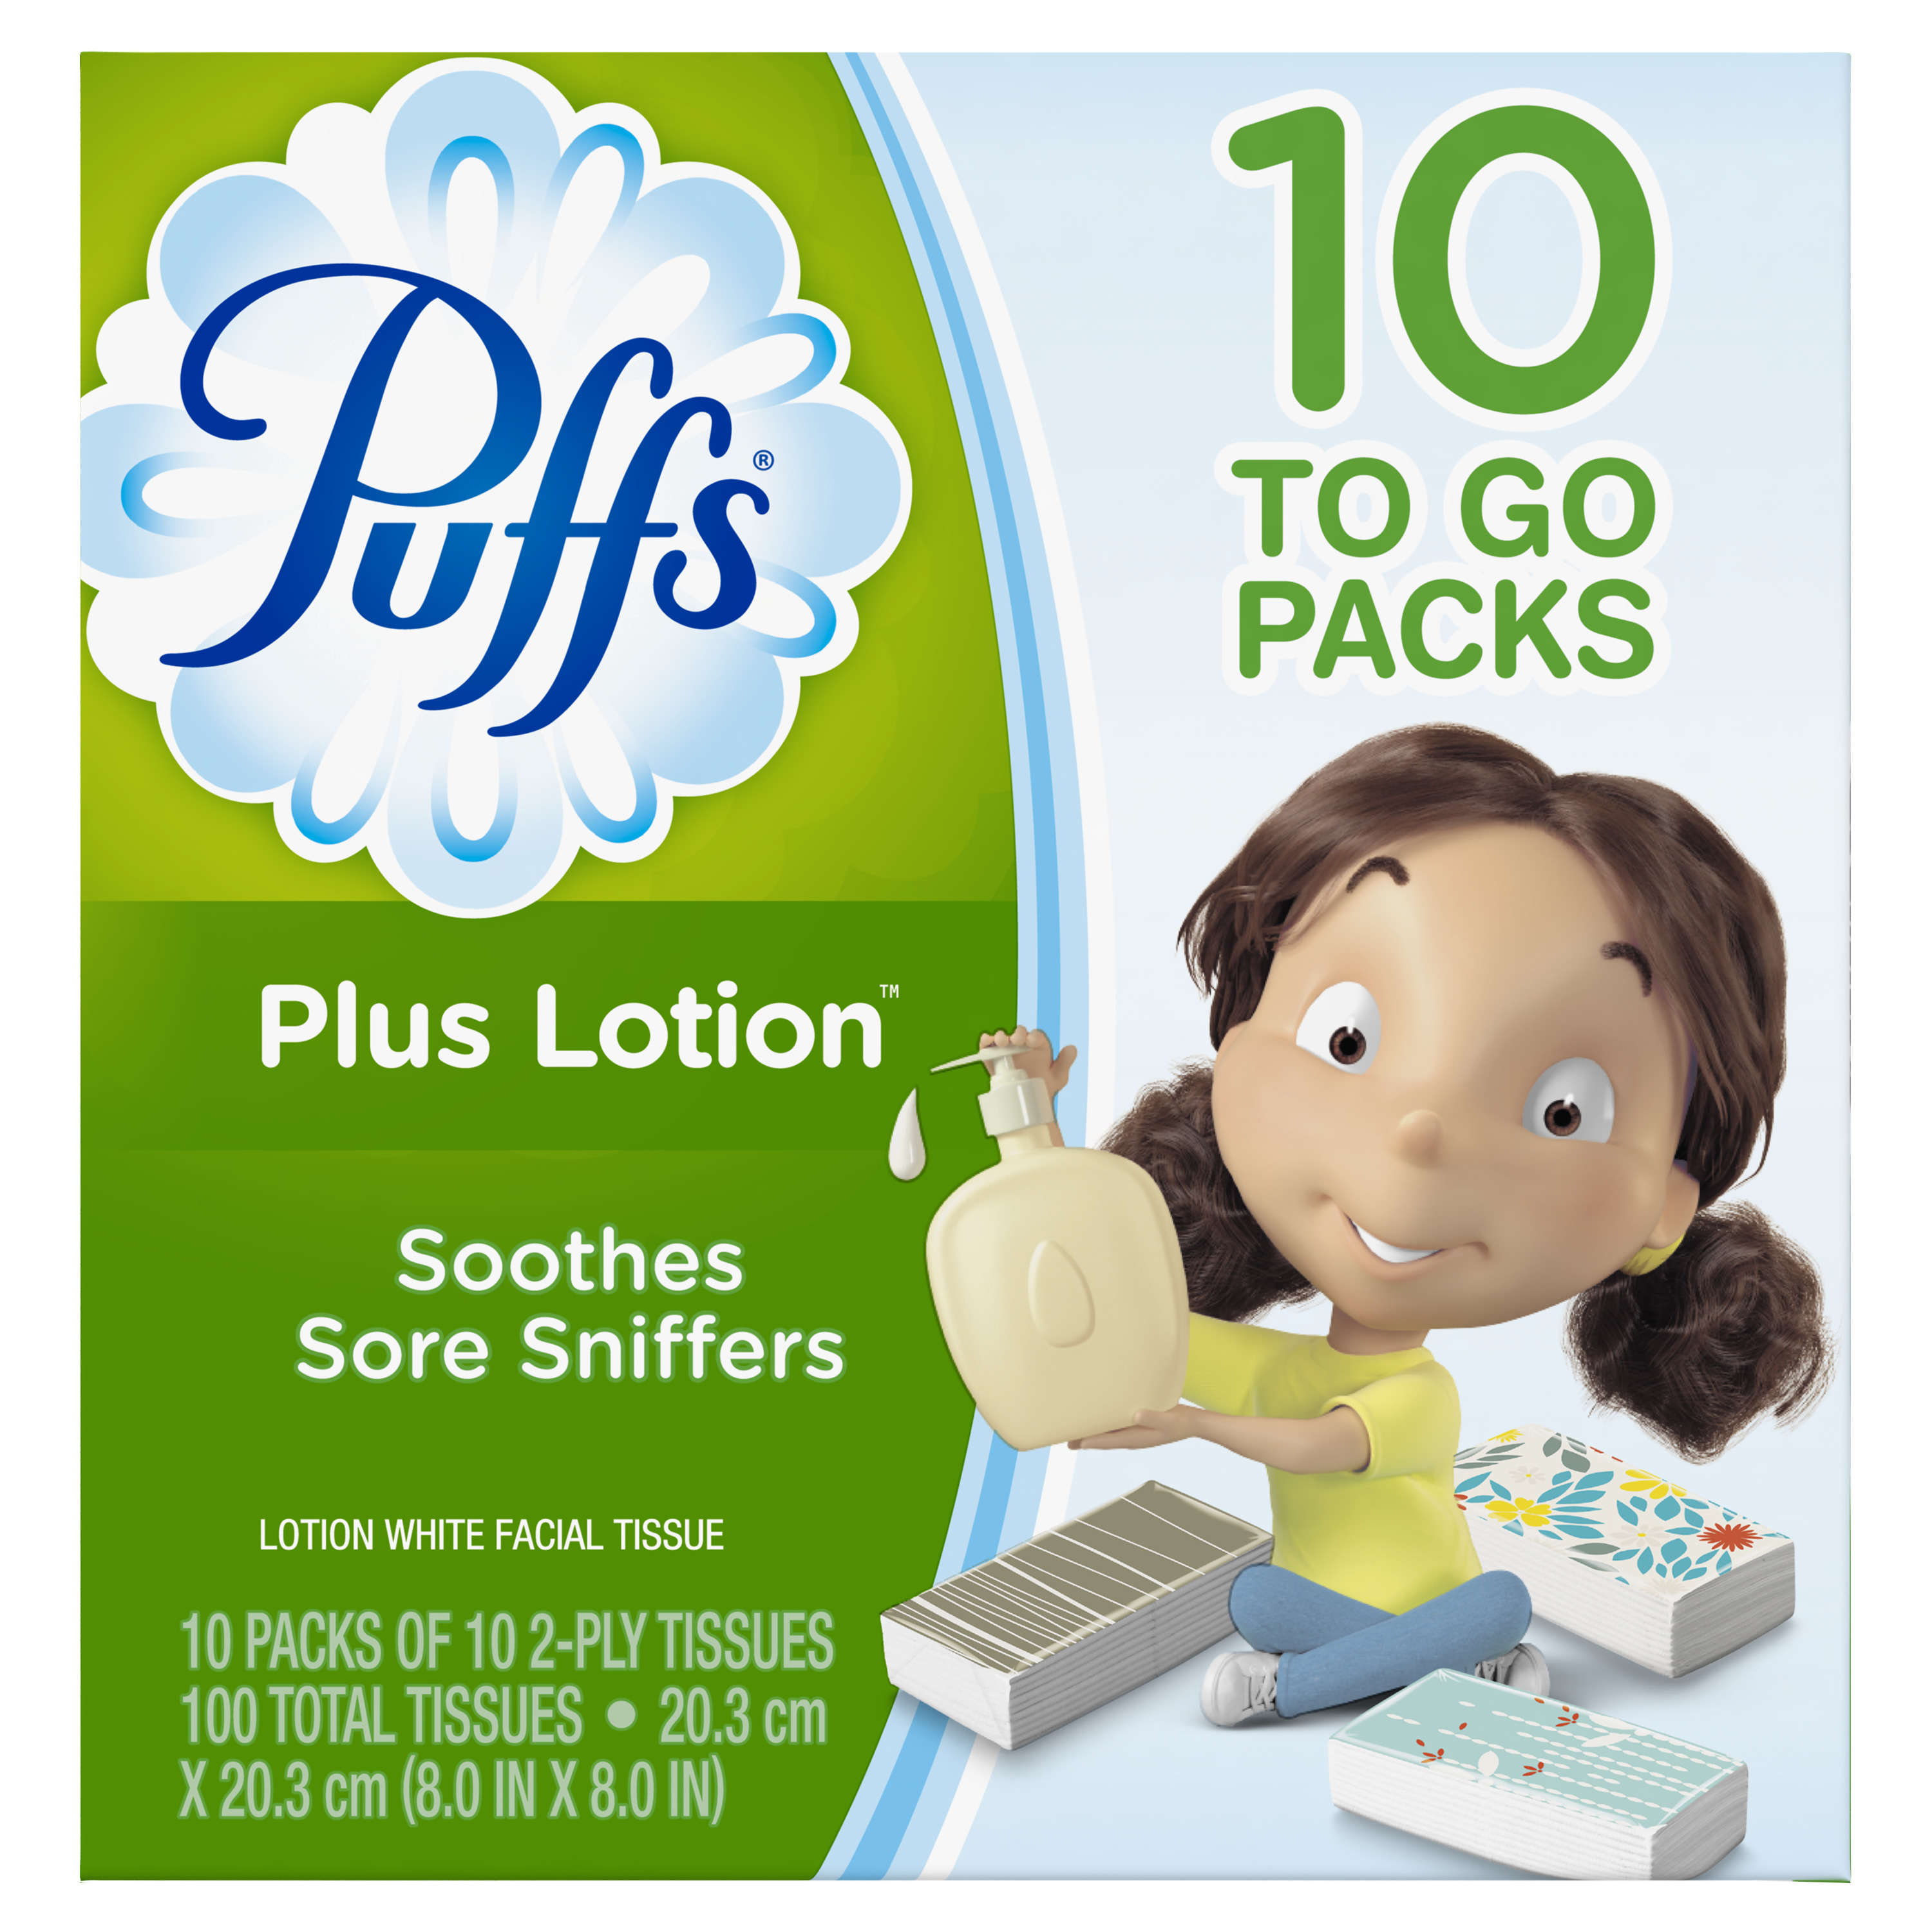 Puffs Plus Lotion Facial Tissues, 10 To Go Packs, 10 Tissues per Pack